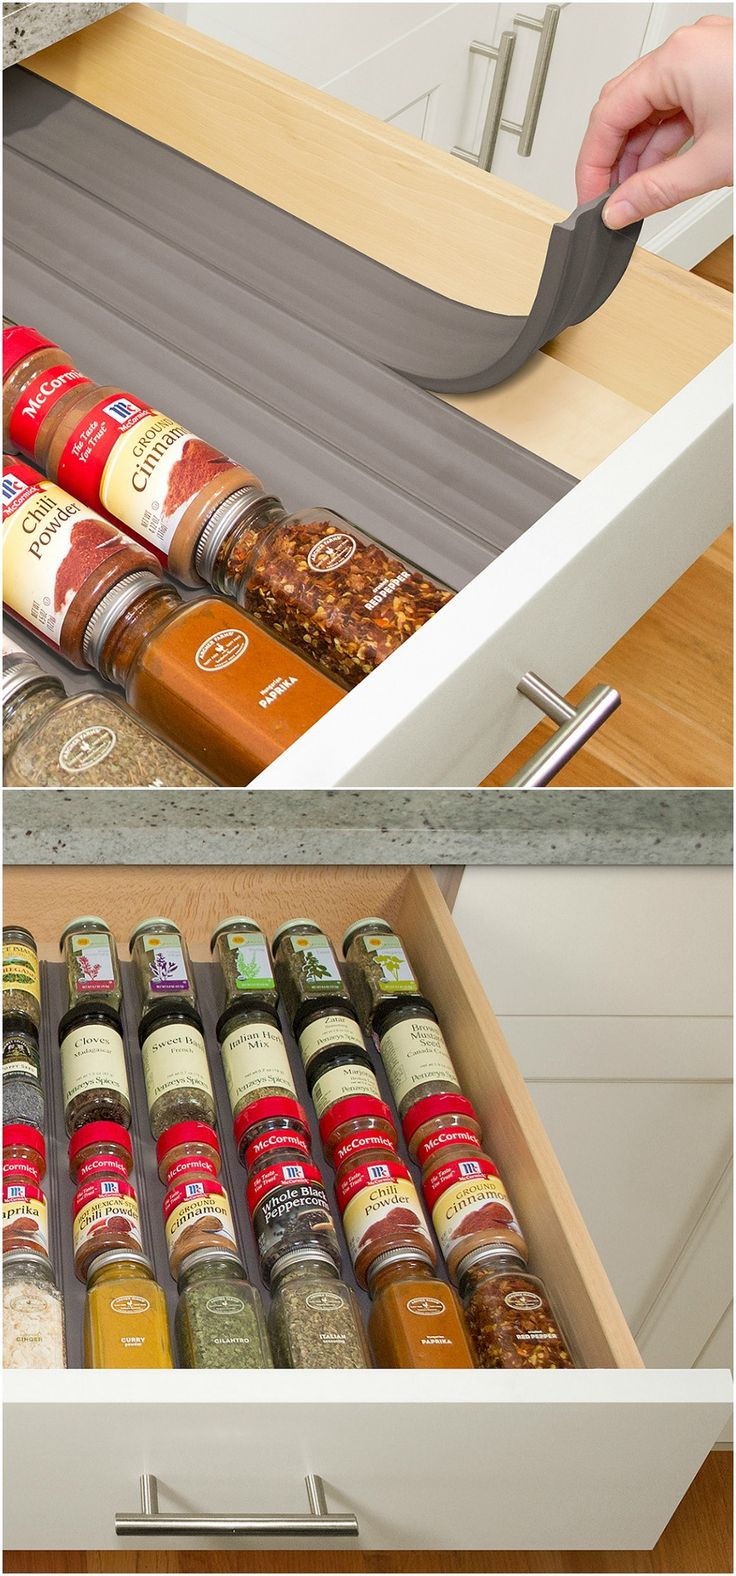 in-drawer spice organization liner